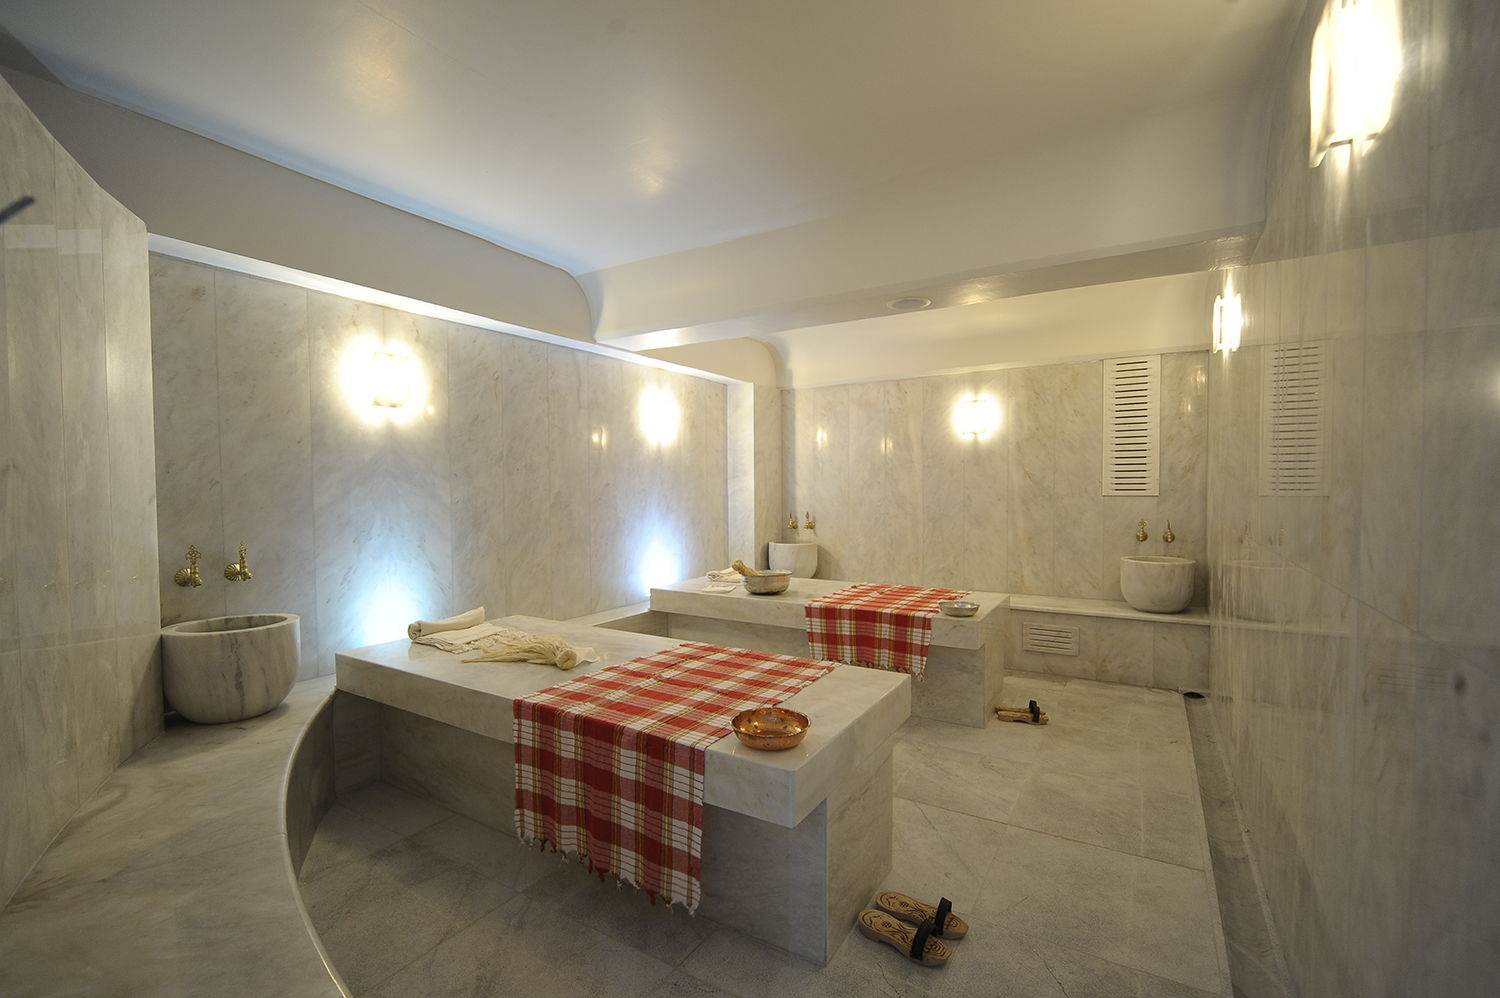 Adjacent to the Hammam bathing area is a treatment area with two marble tables used for body treatments and massages. [Image courtesy of Hammam Bathing House Athens]